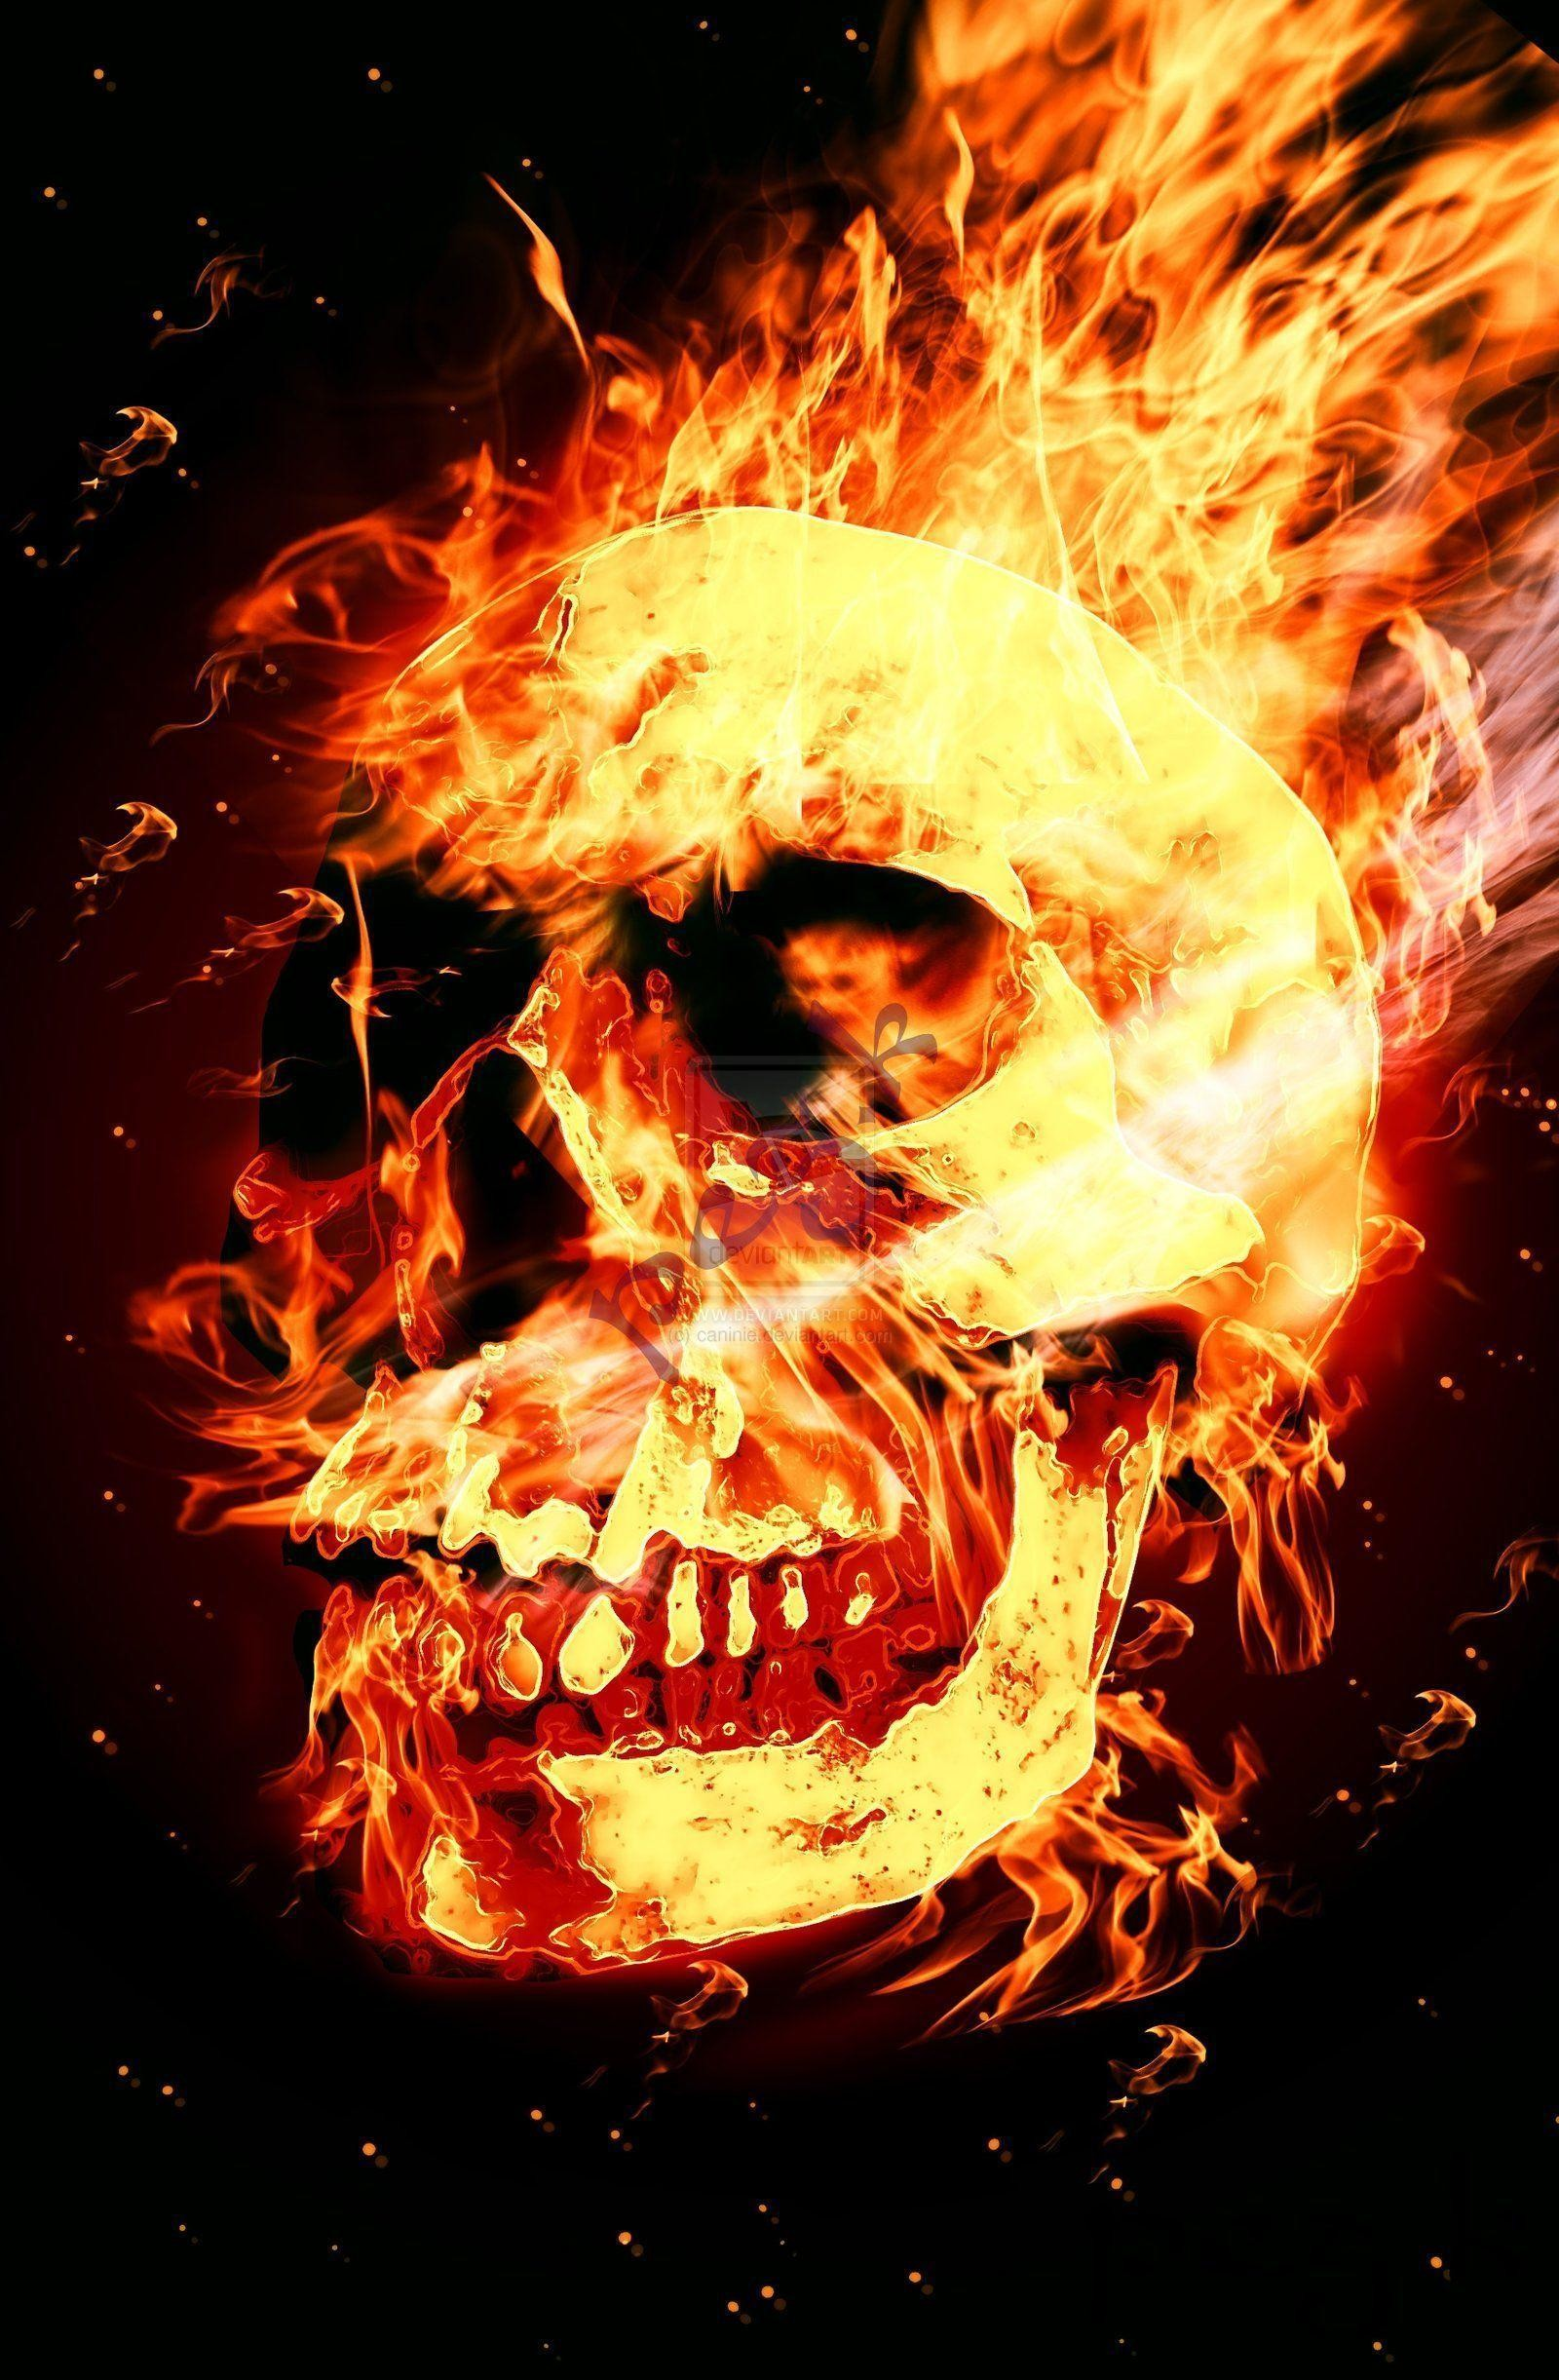 Images of Flaming Skull Wallpaper - #rock-cafe